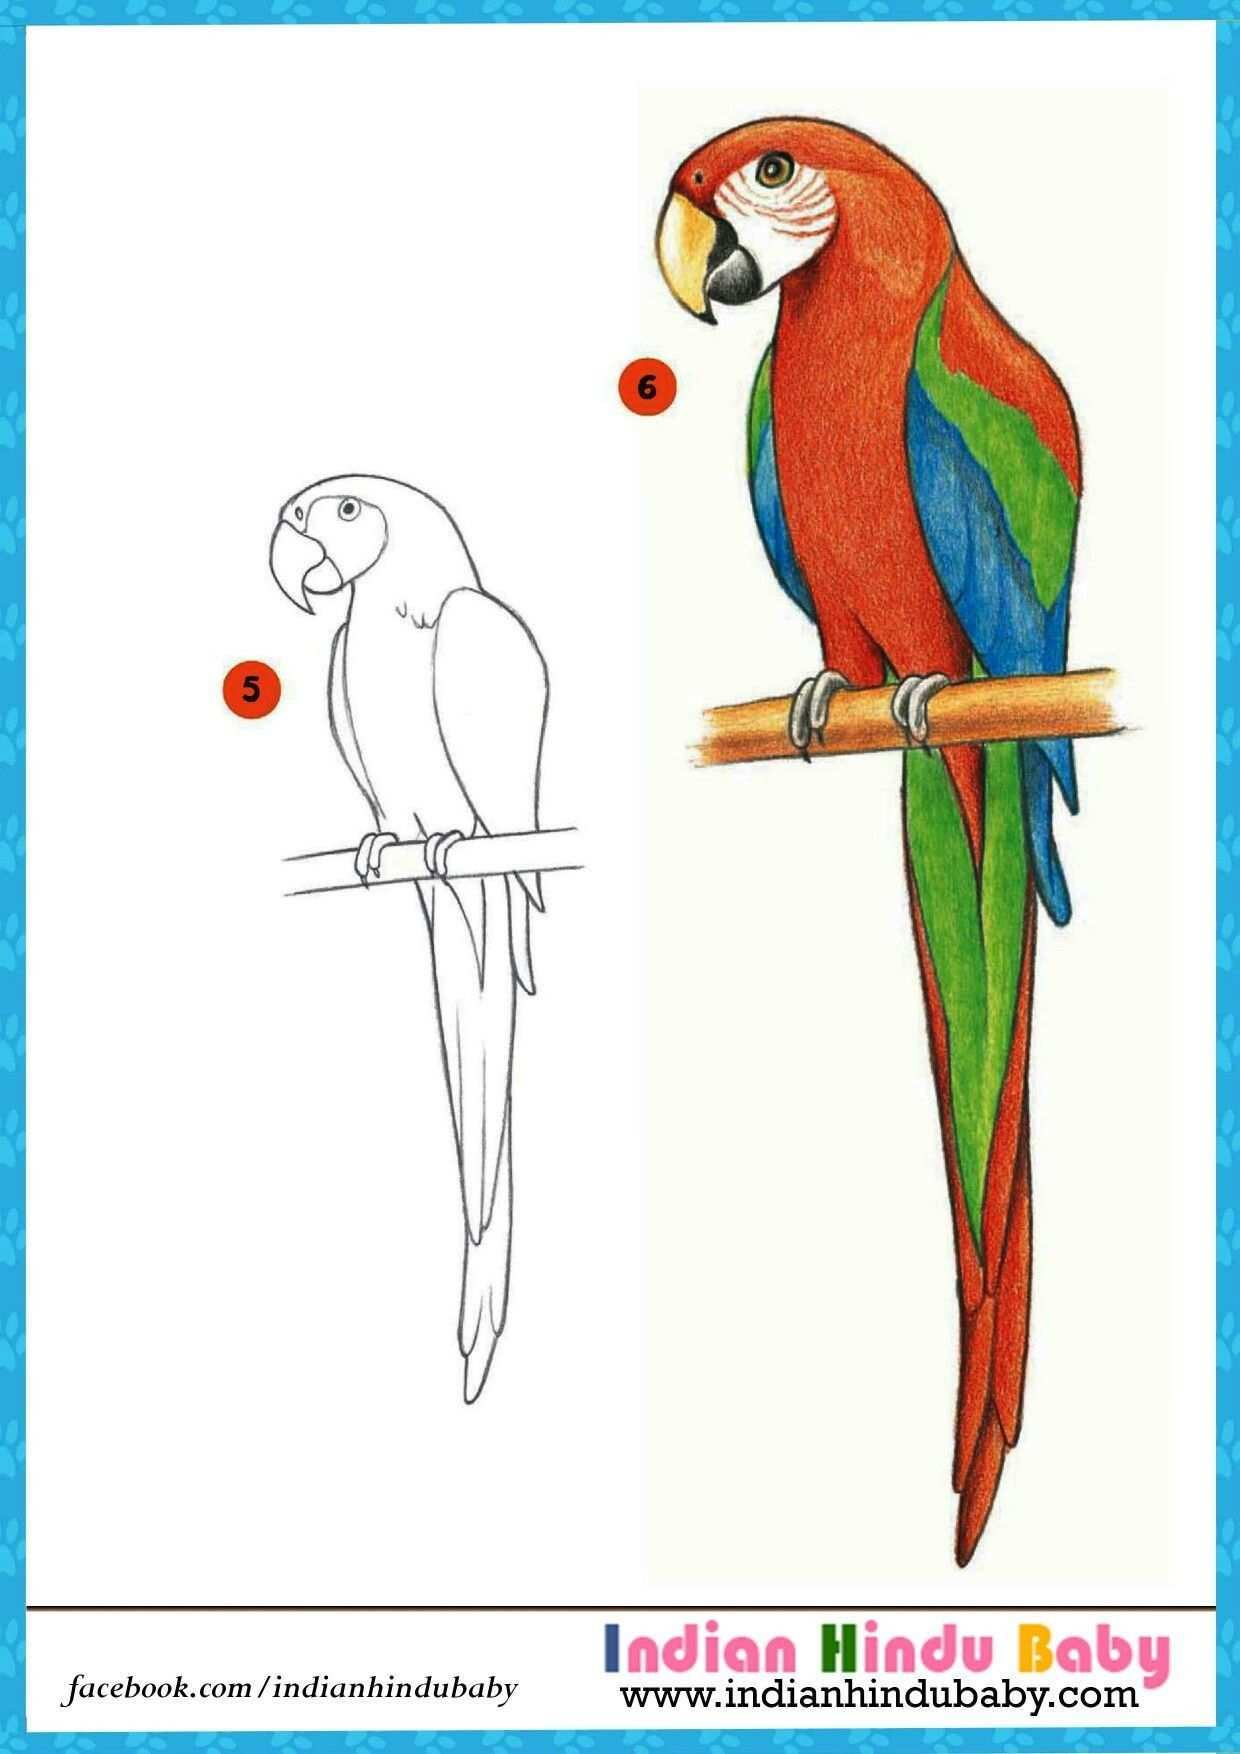 Parrot Drawing Refrence The Beauty Of Colorful Parrot Macau Is Marvellous Teach Your Kid Parrot Drawing Parrots Art Parrot Painting